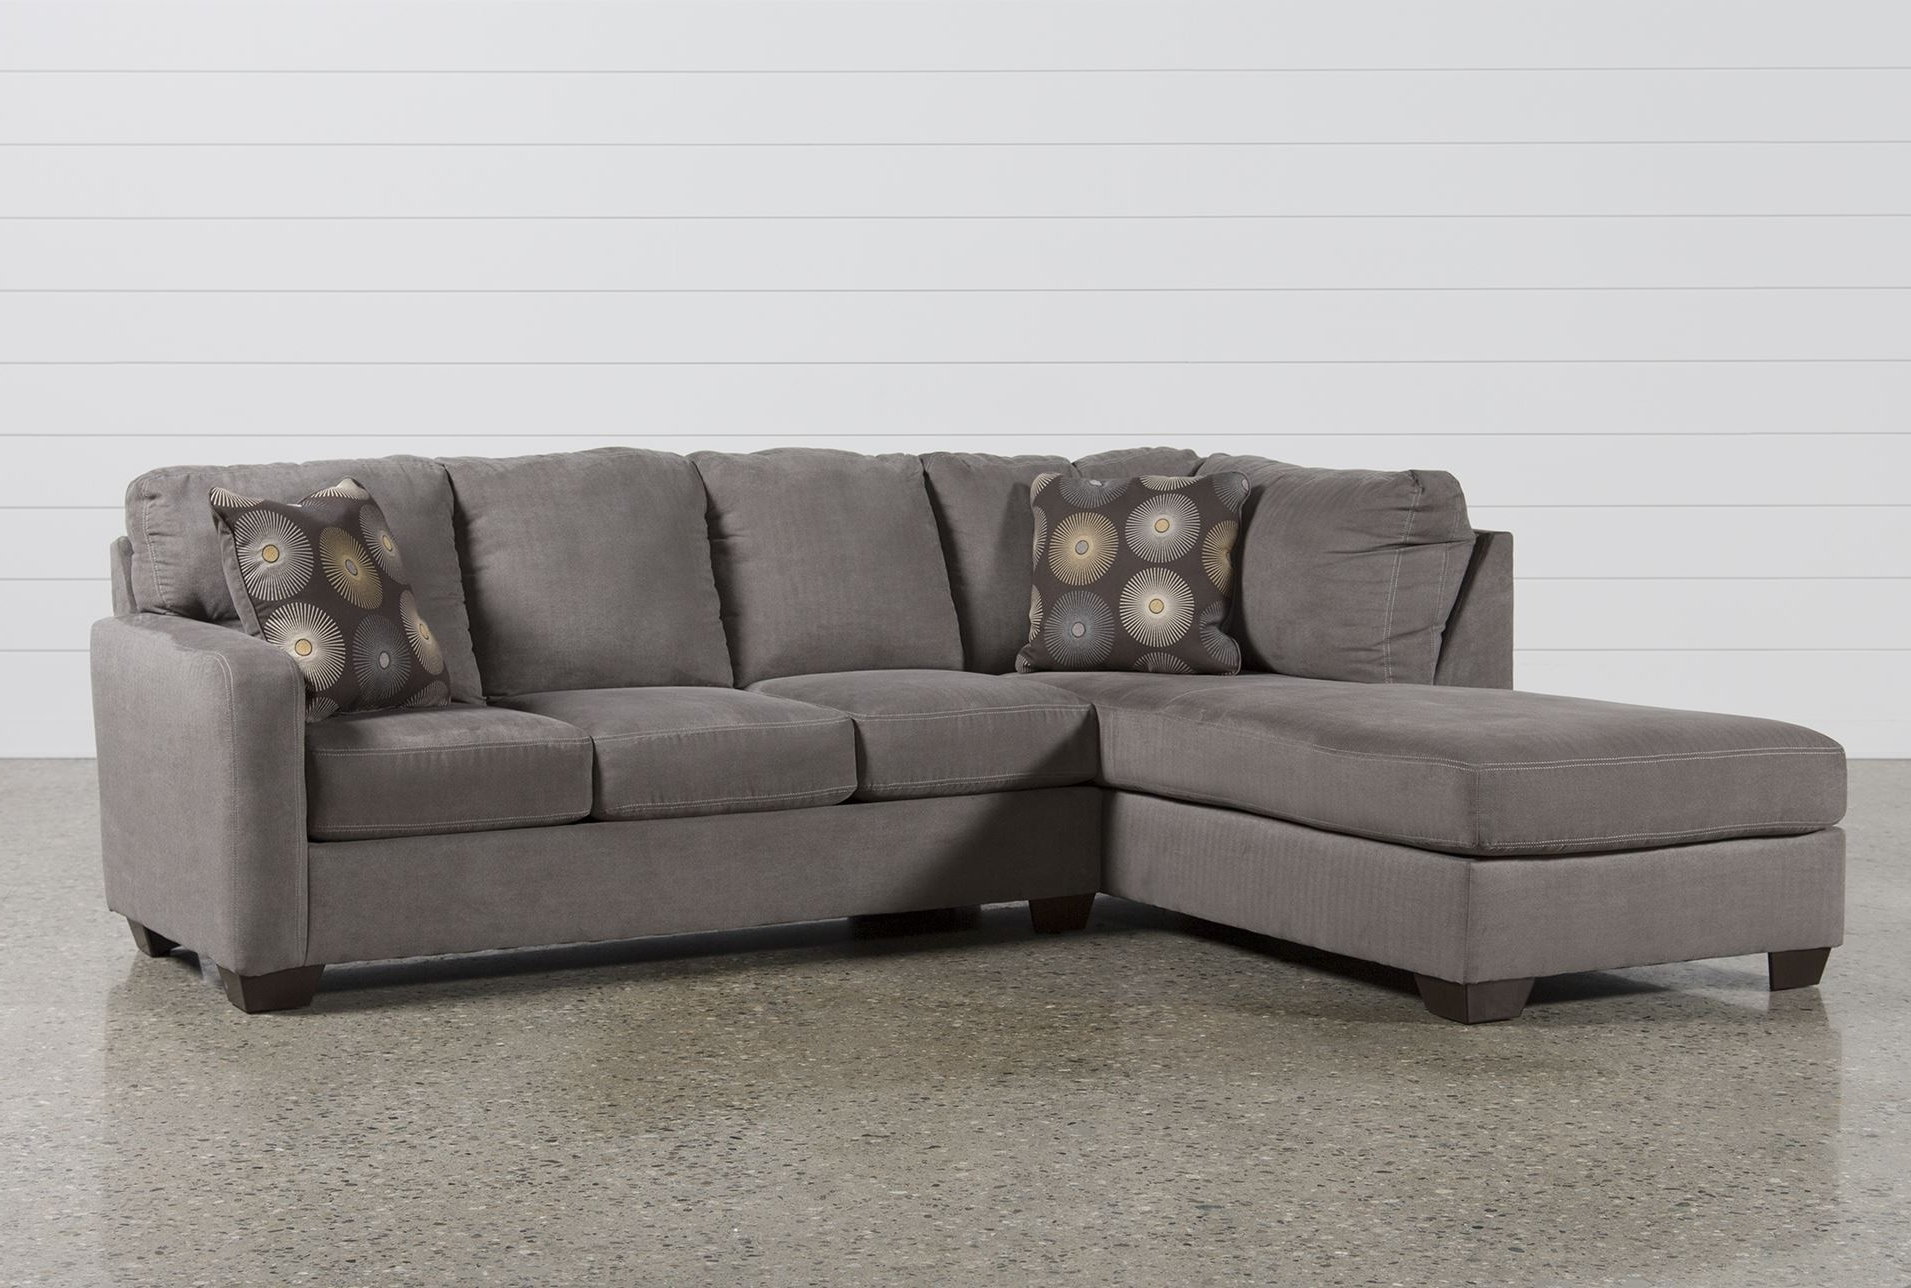 Sofas With Chaise Regarding Preferred Sofa ~ Luxury Leather Sofa With Chaise Lounge Cute Small Sectional (View 9 of 15)